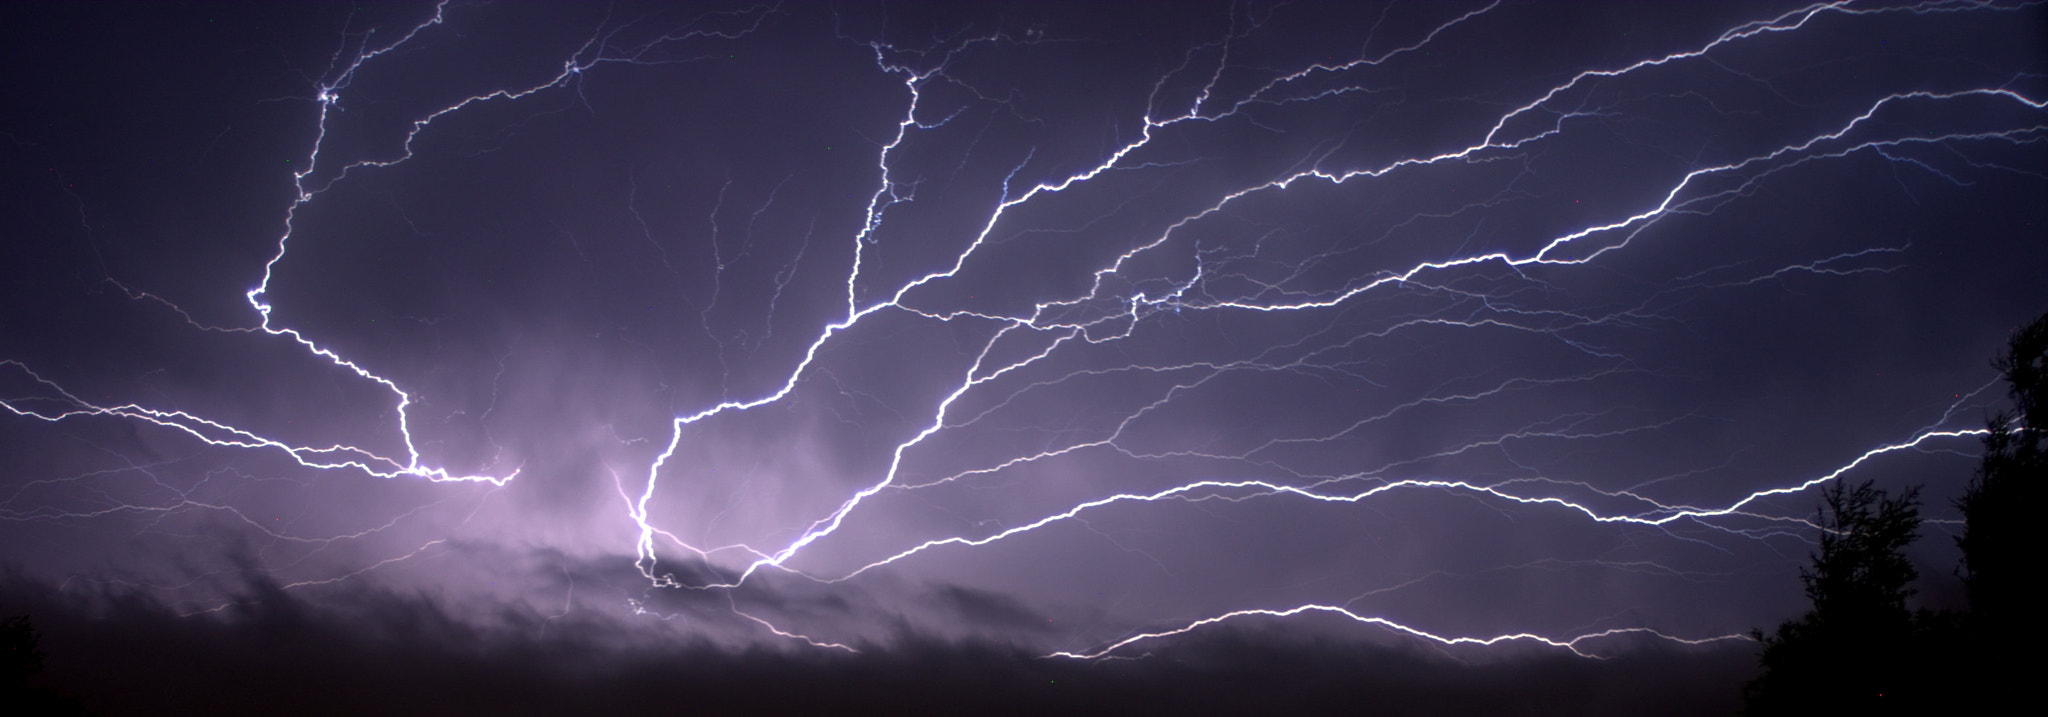 Photograph Lightning Show I by Tim Wells on 500px